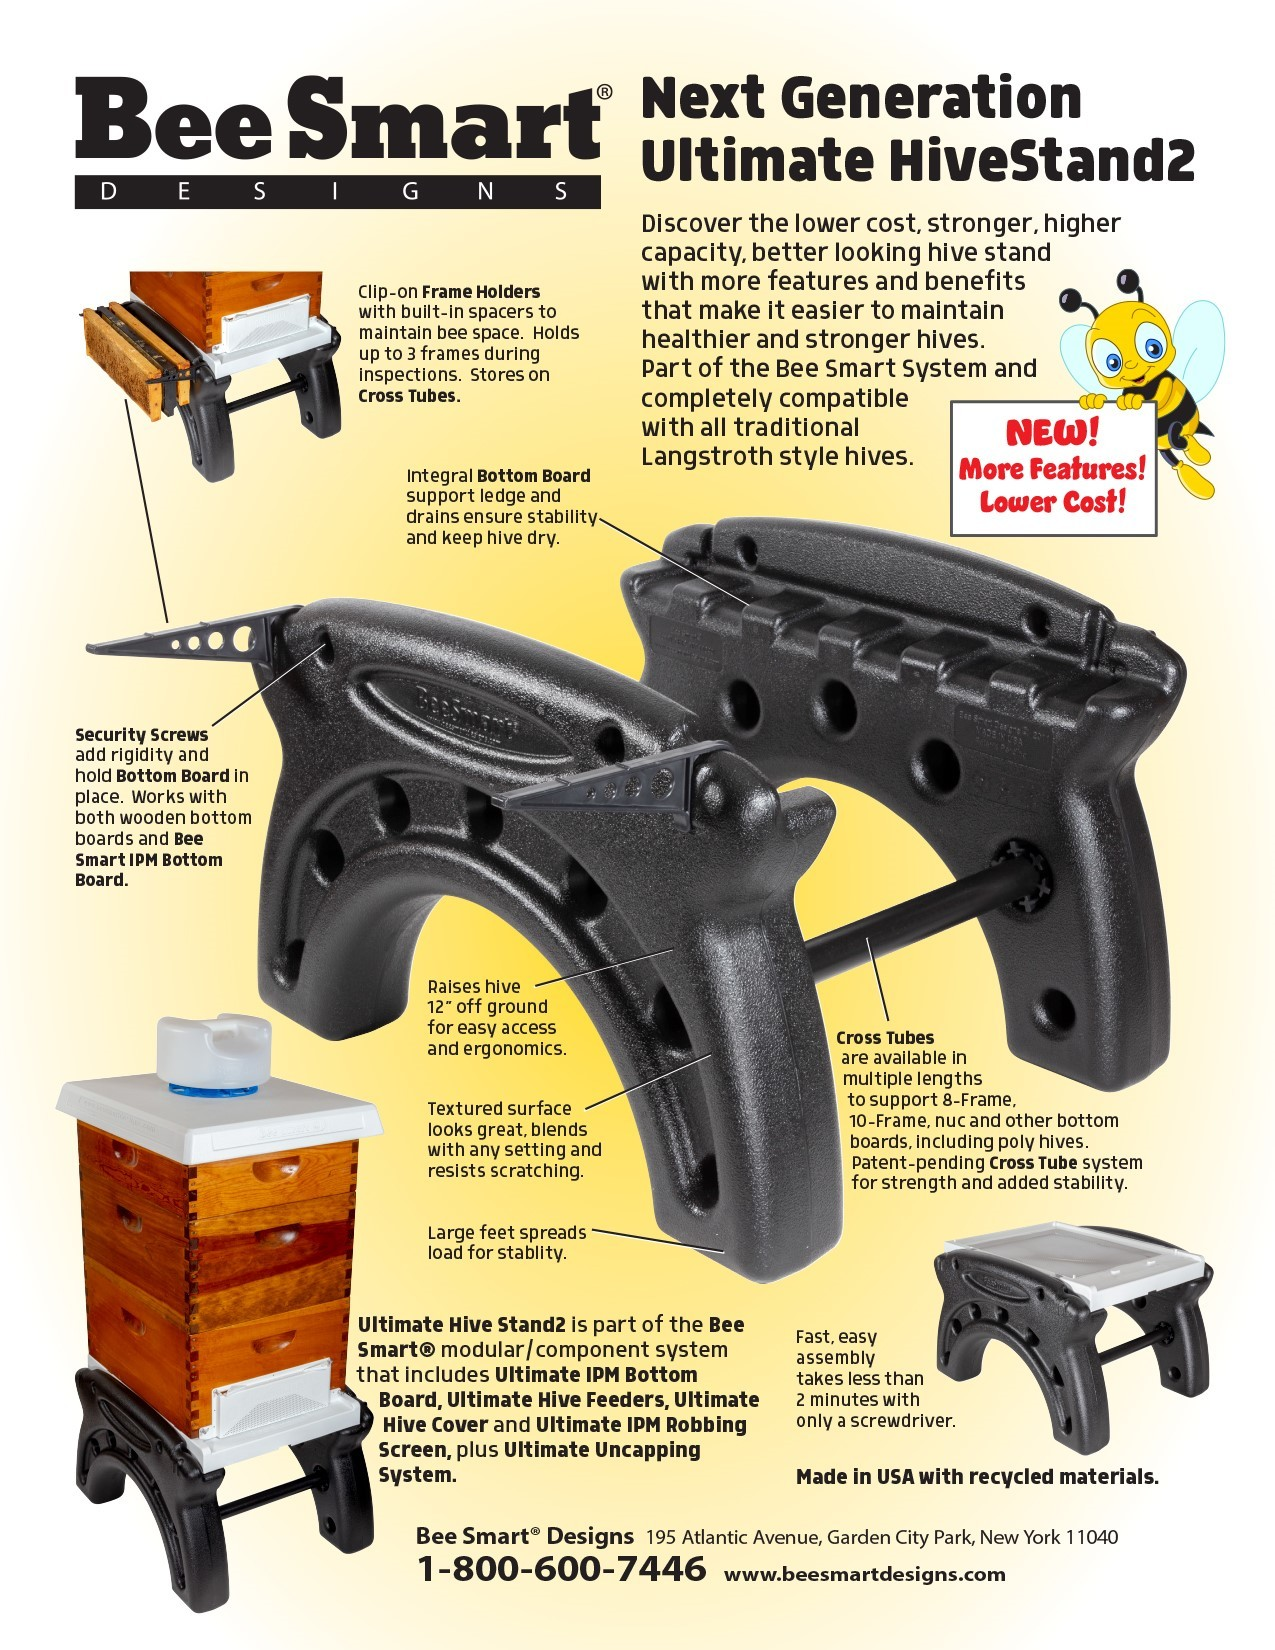 Beesmart Ultimate Hive Stand w/ Frame Rest 8-frame